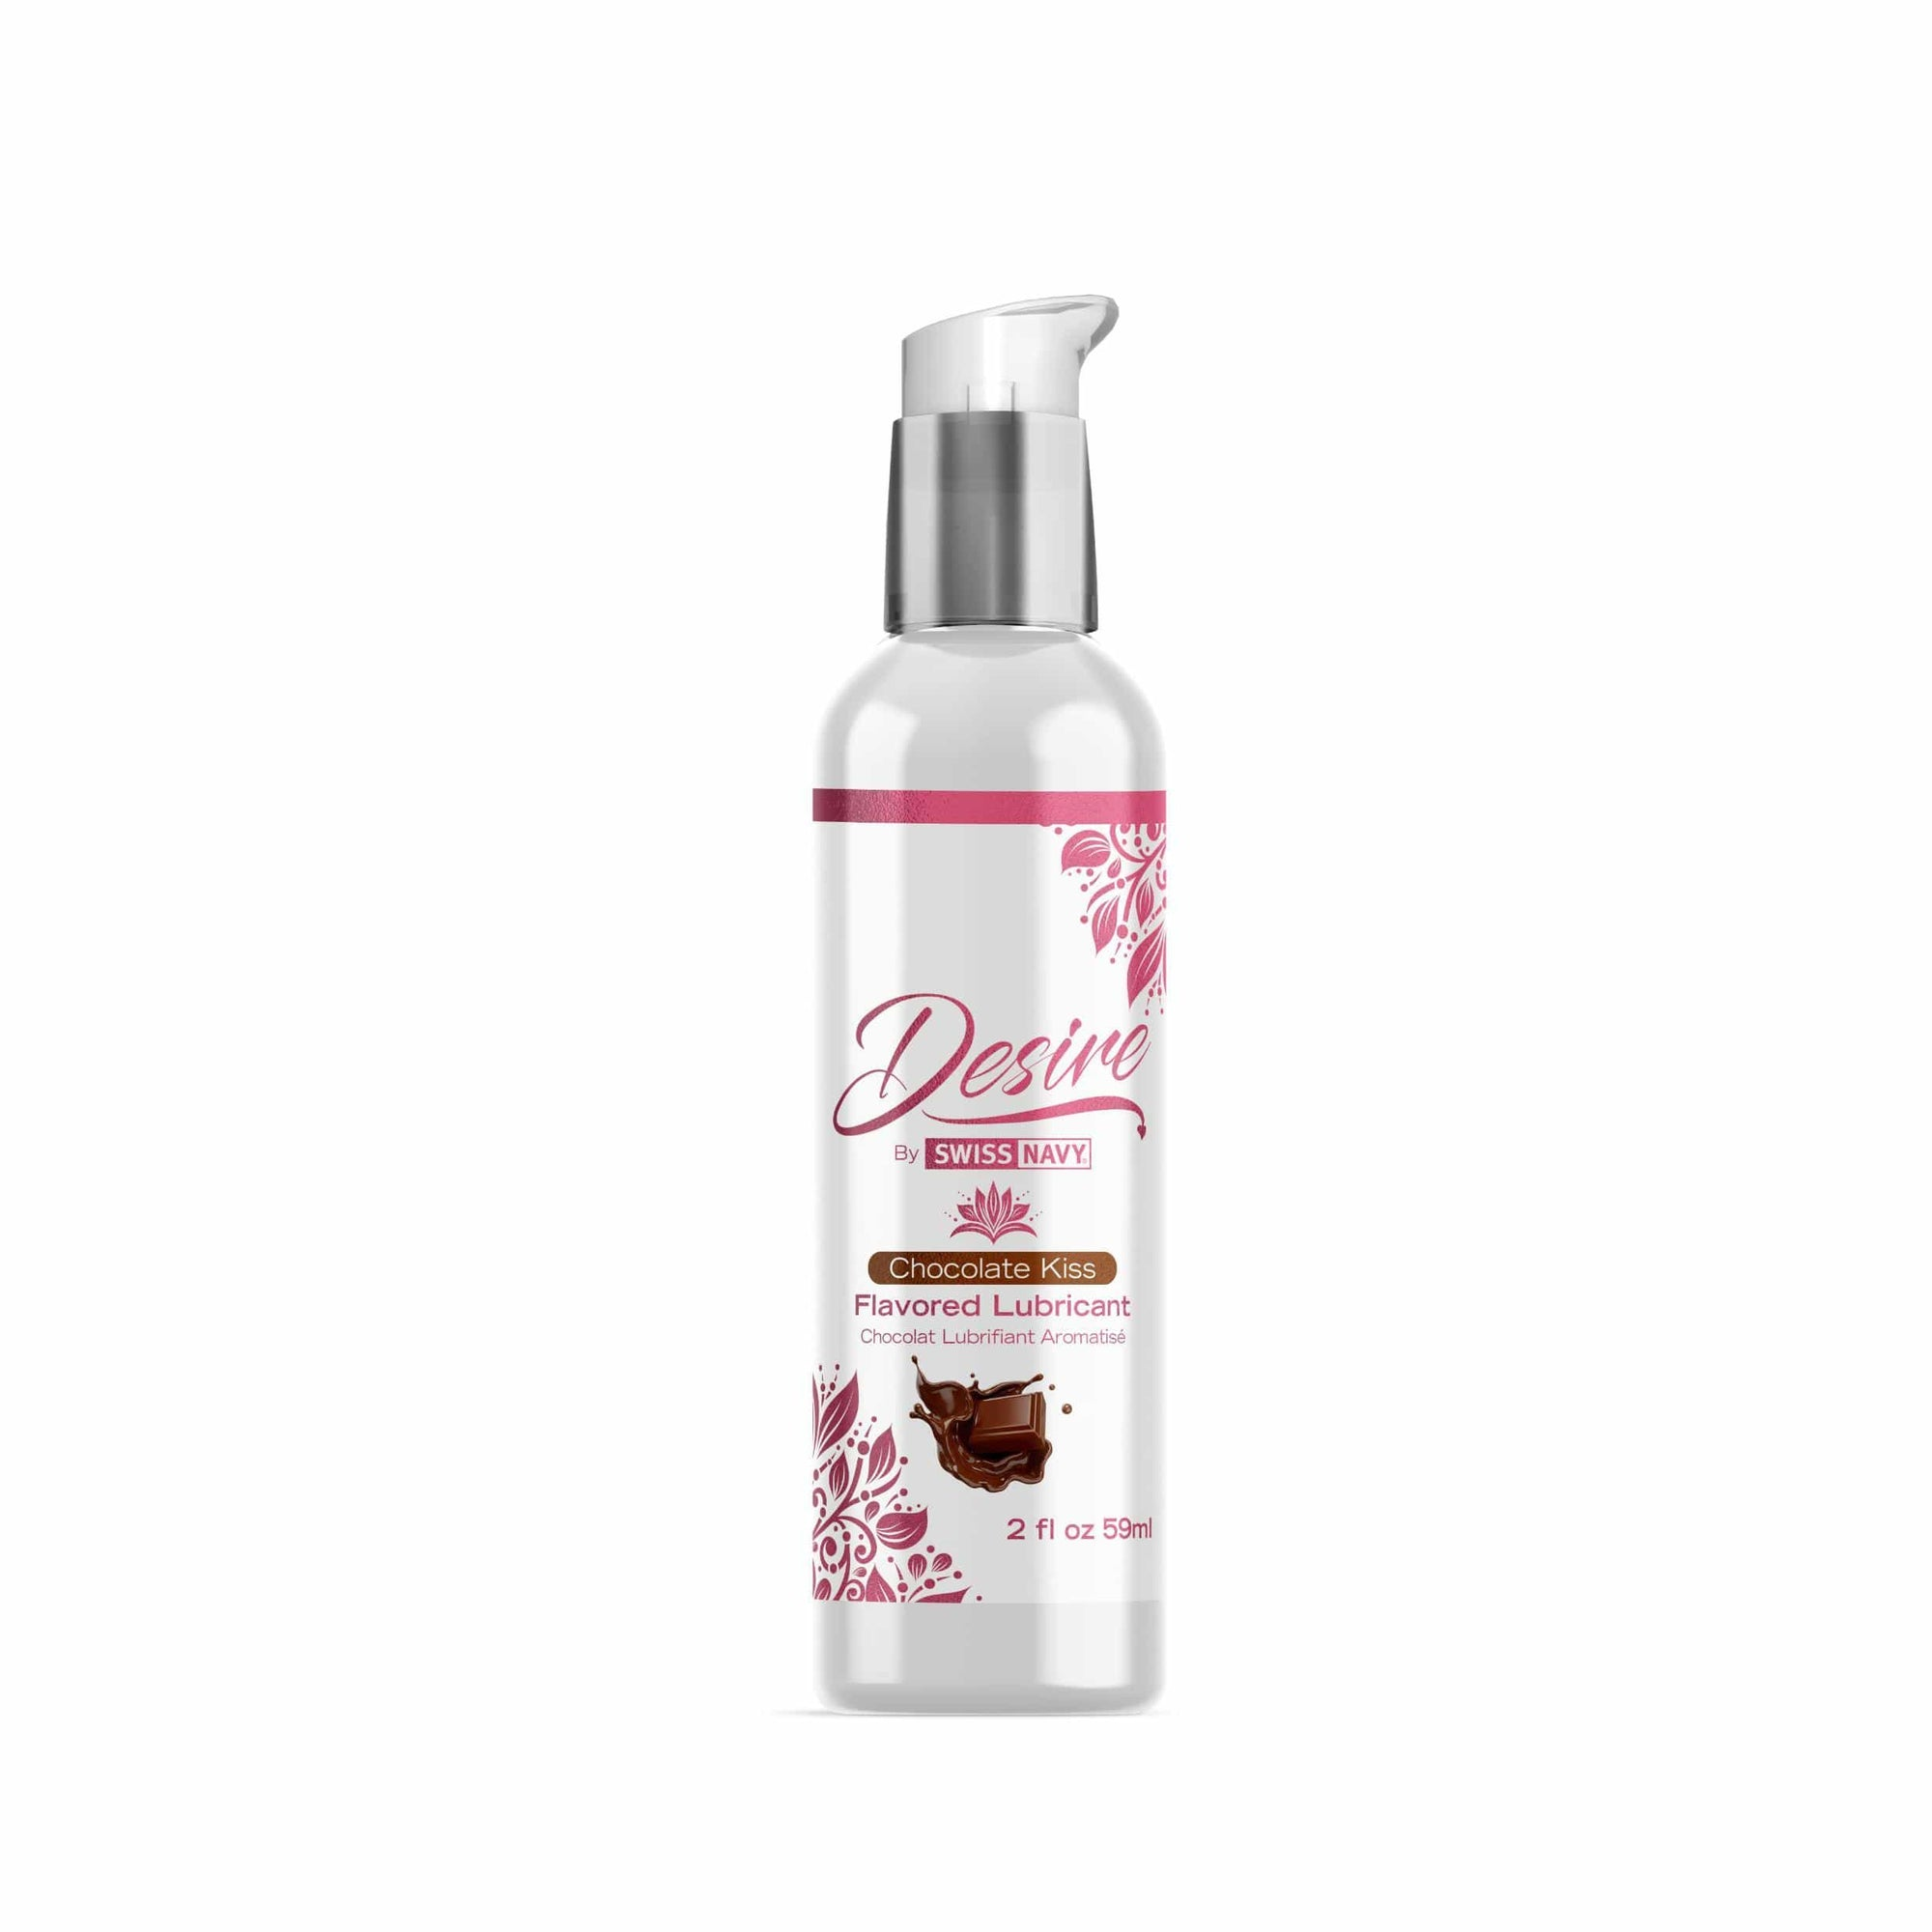 desire flavored lubricant chocolate kiss 2 fl oz